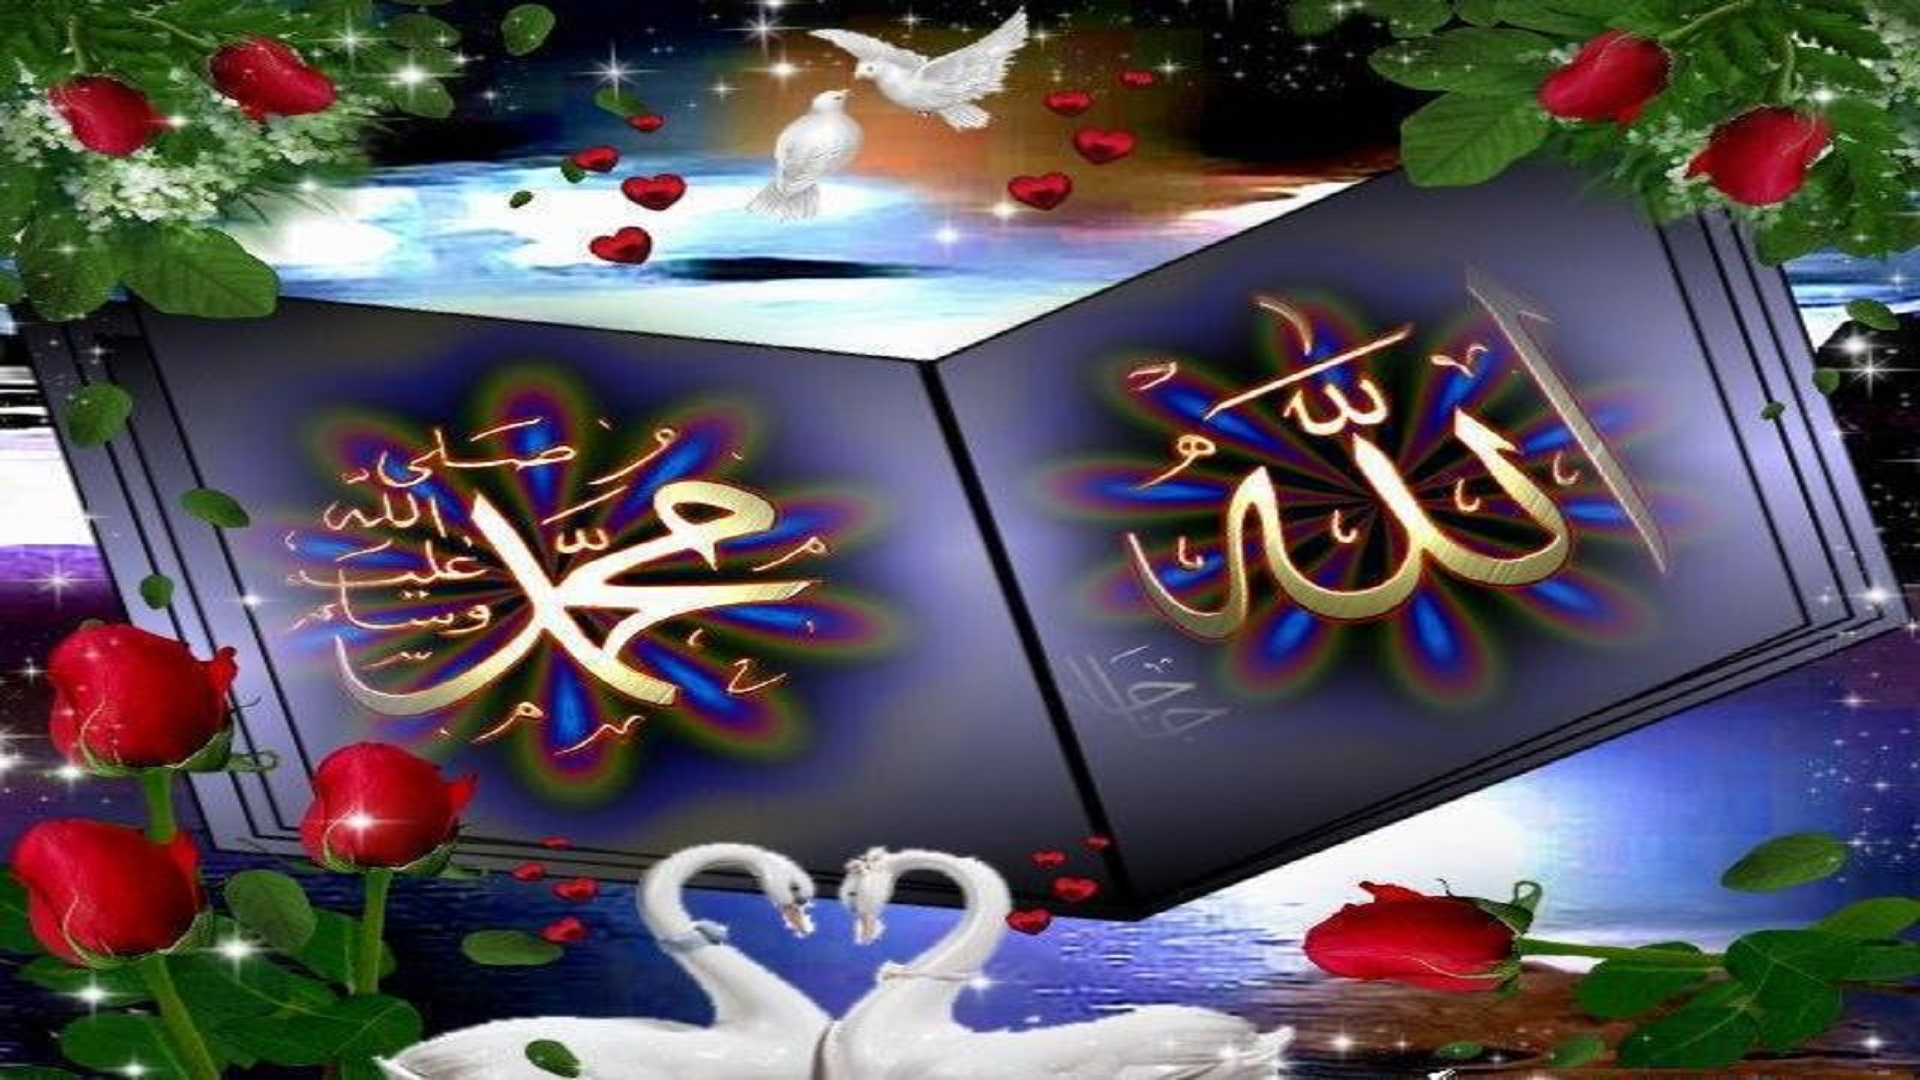 5 best islamic live wallpapers apps for android